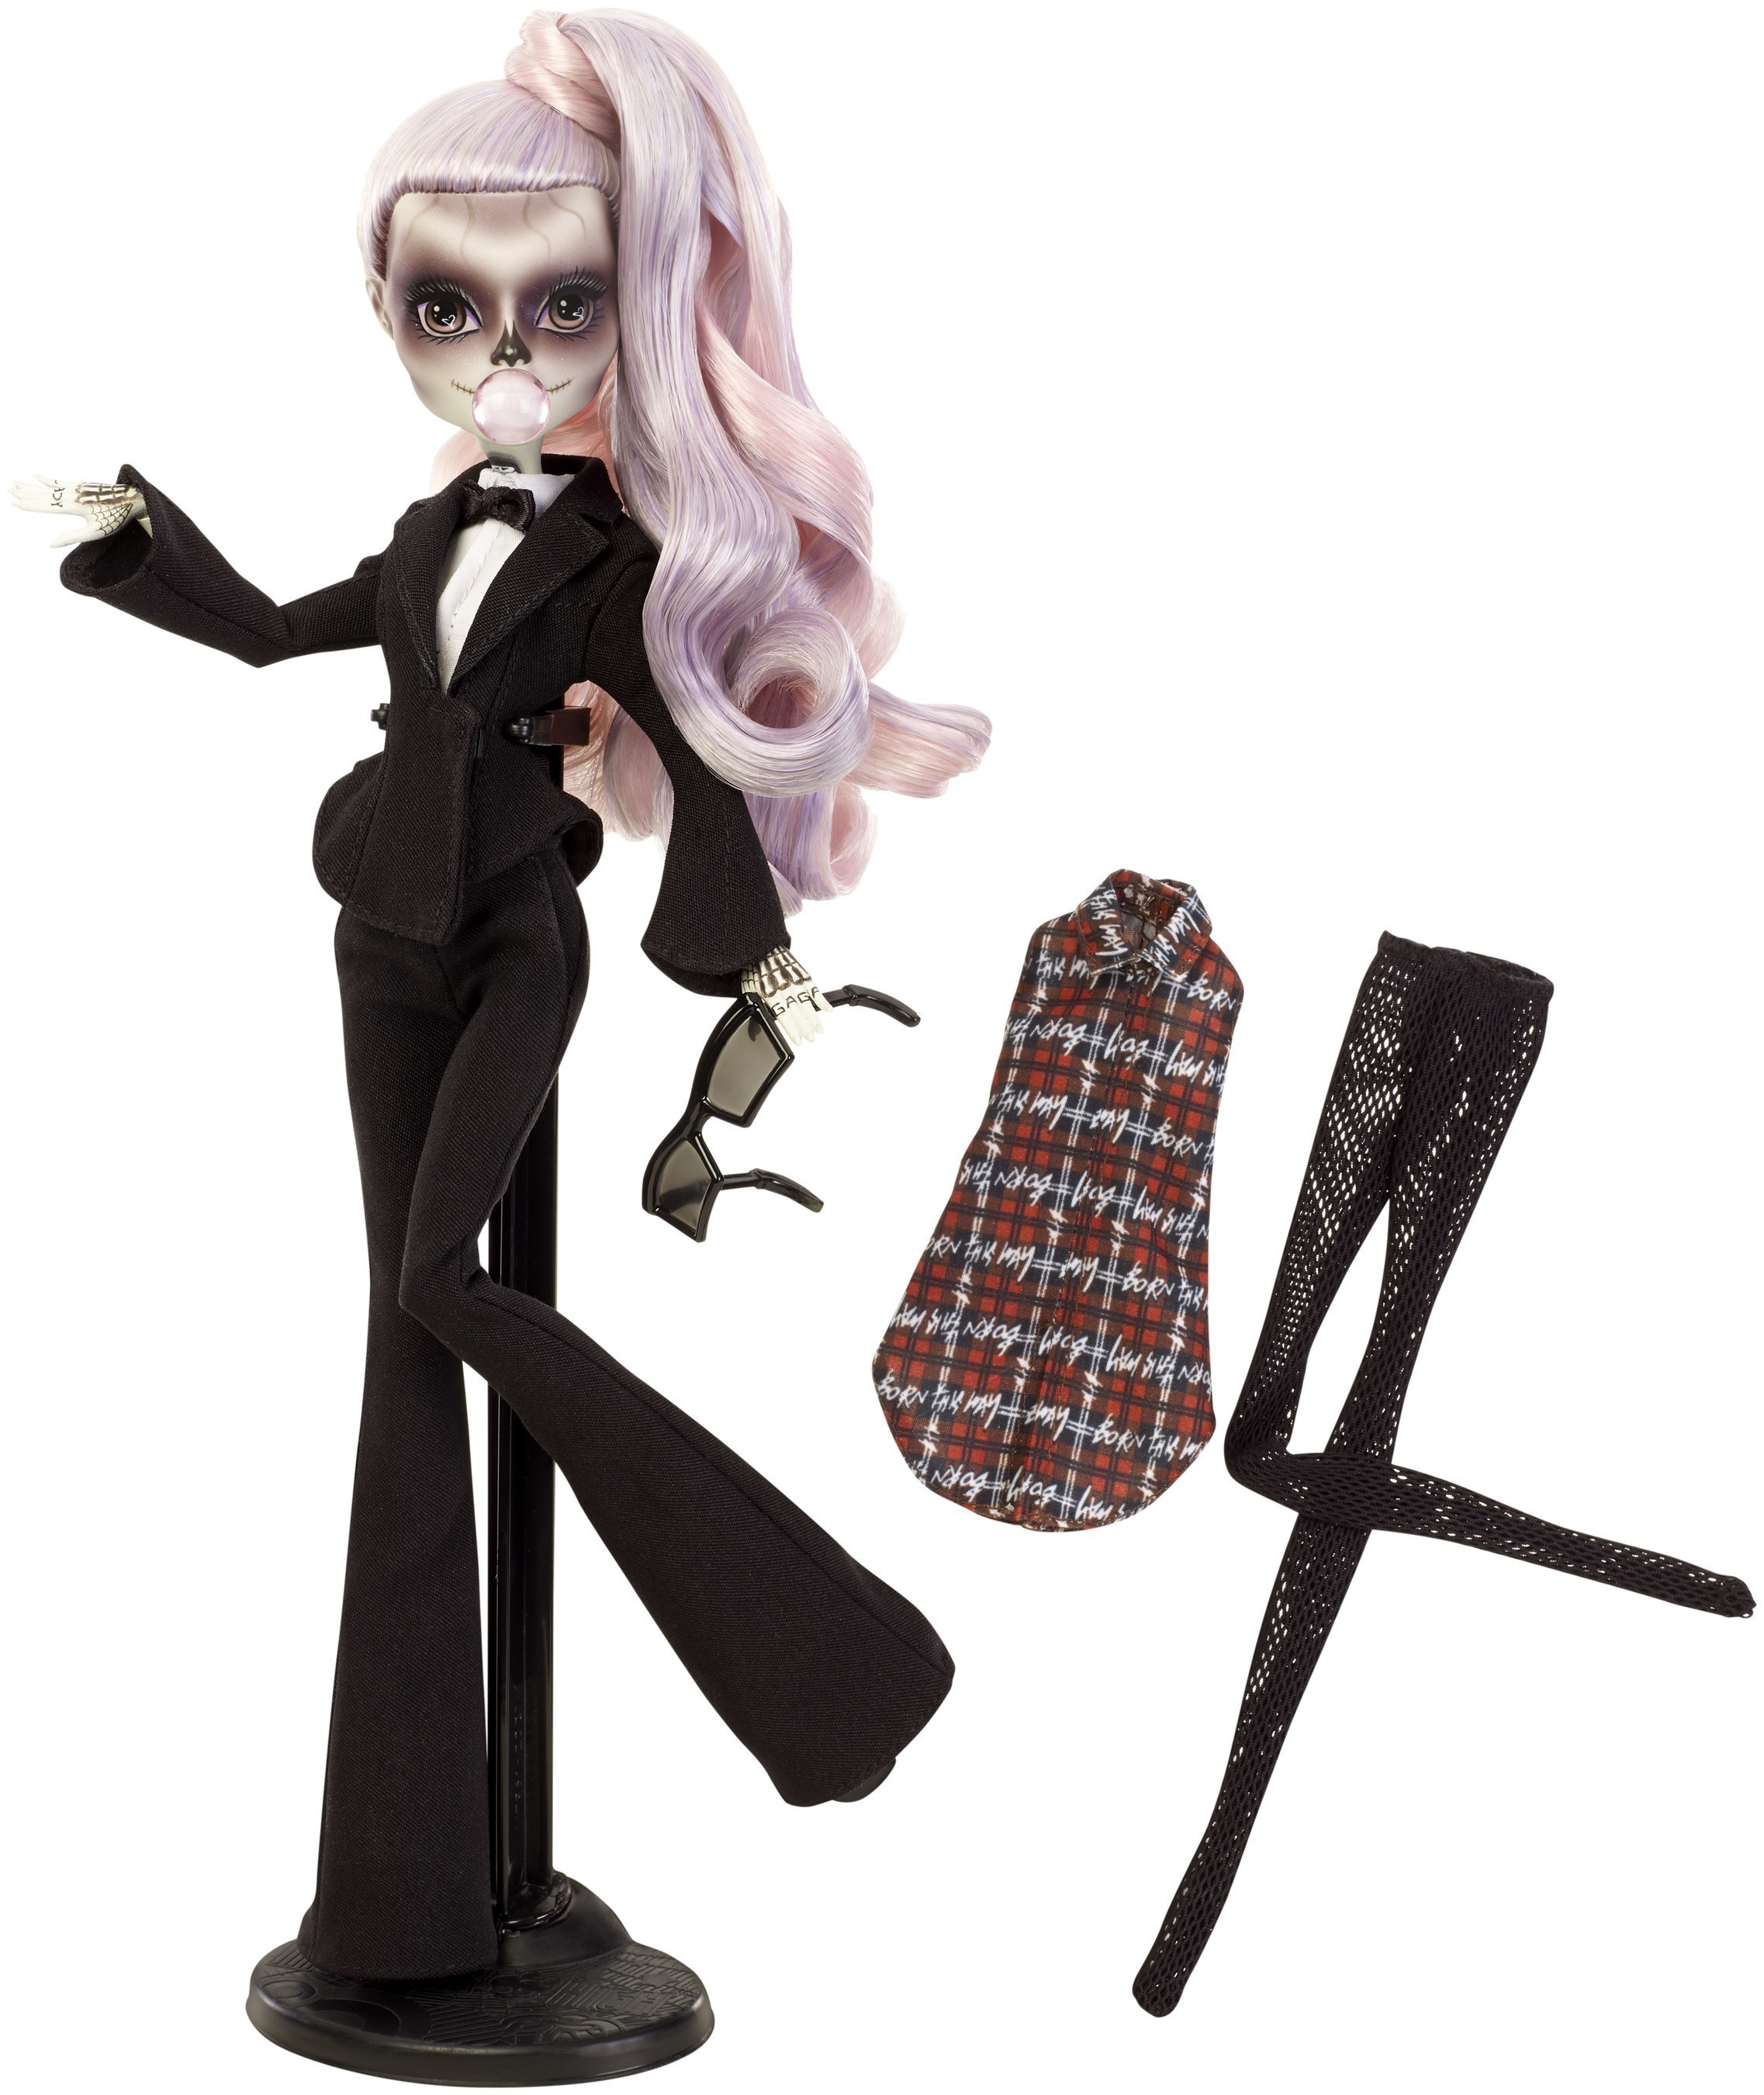 Today, Monster High and Born This Way Foundation revealed Zomby Gaga, a doll inspired by Lady Gaga to champion kindness, instill bravery, and build a world where young people celebrate their differences.